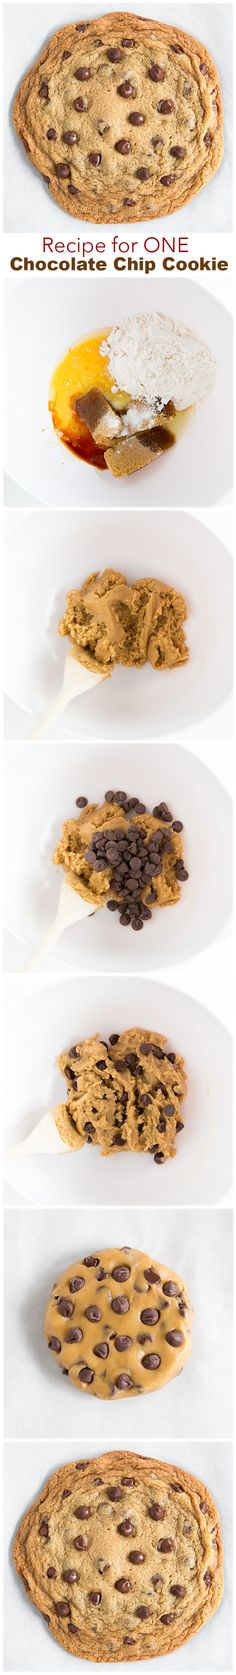 Easy recipe for ONE big Chocolate Chip Cookie